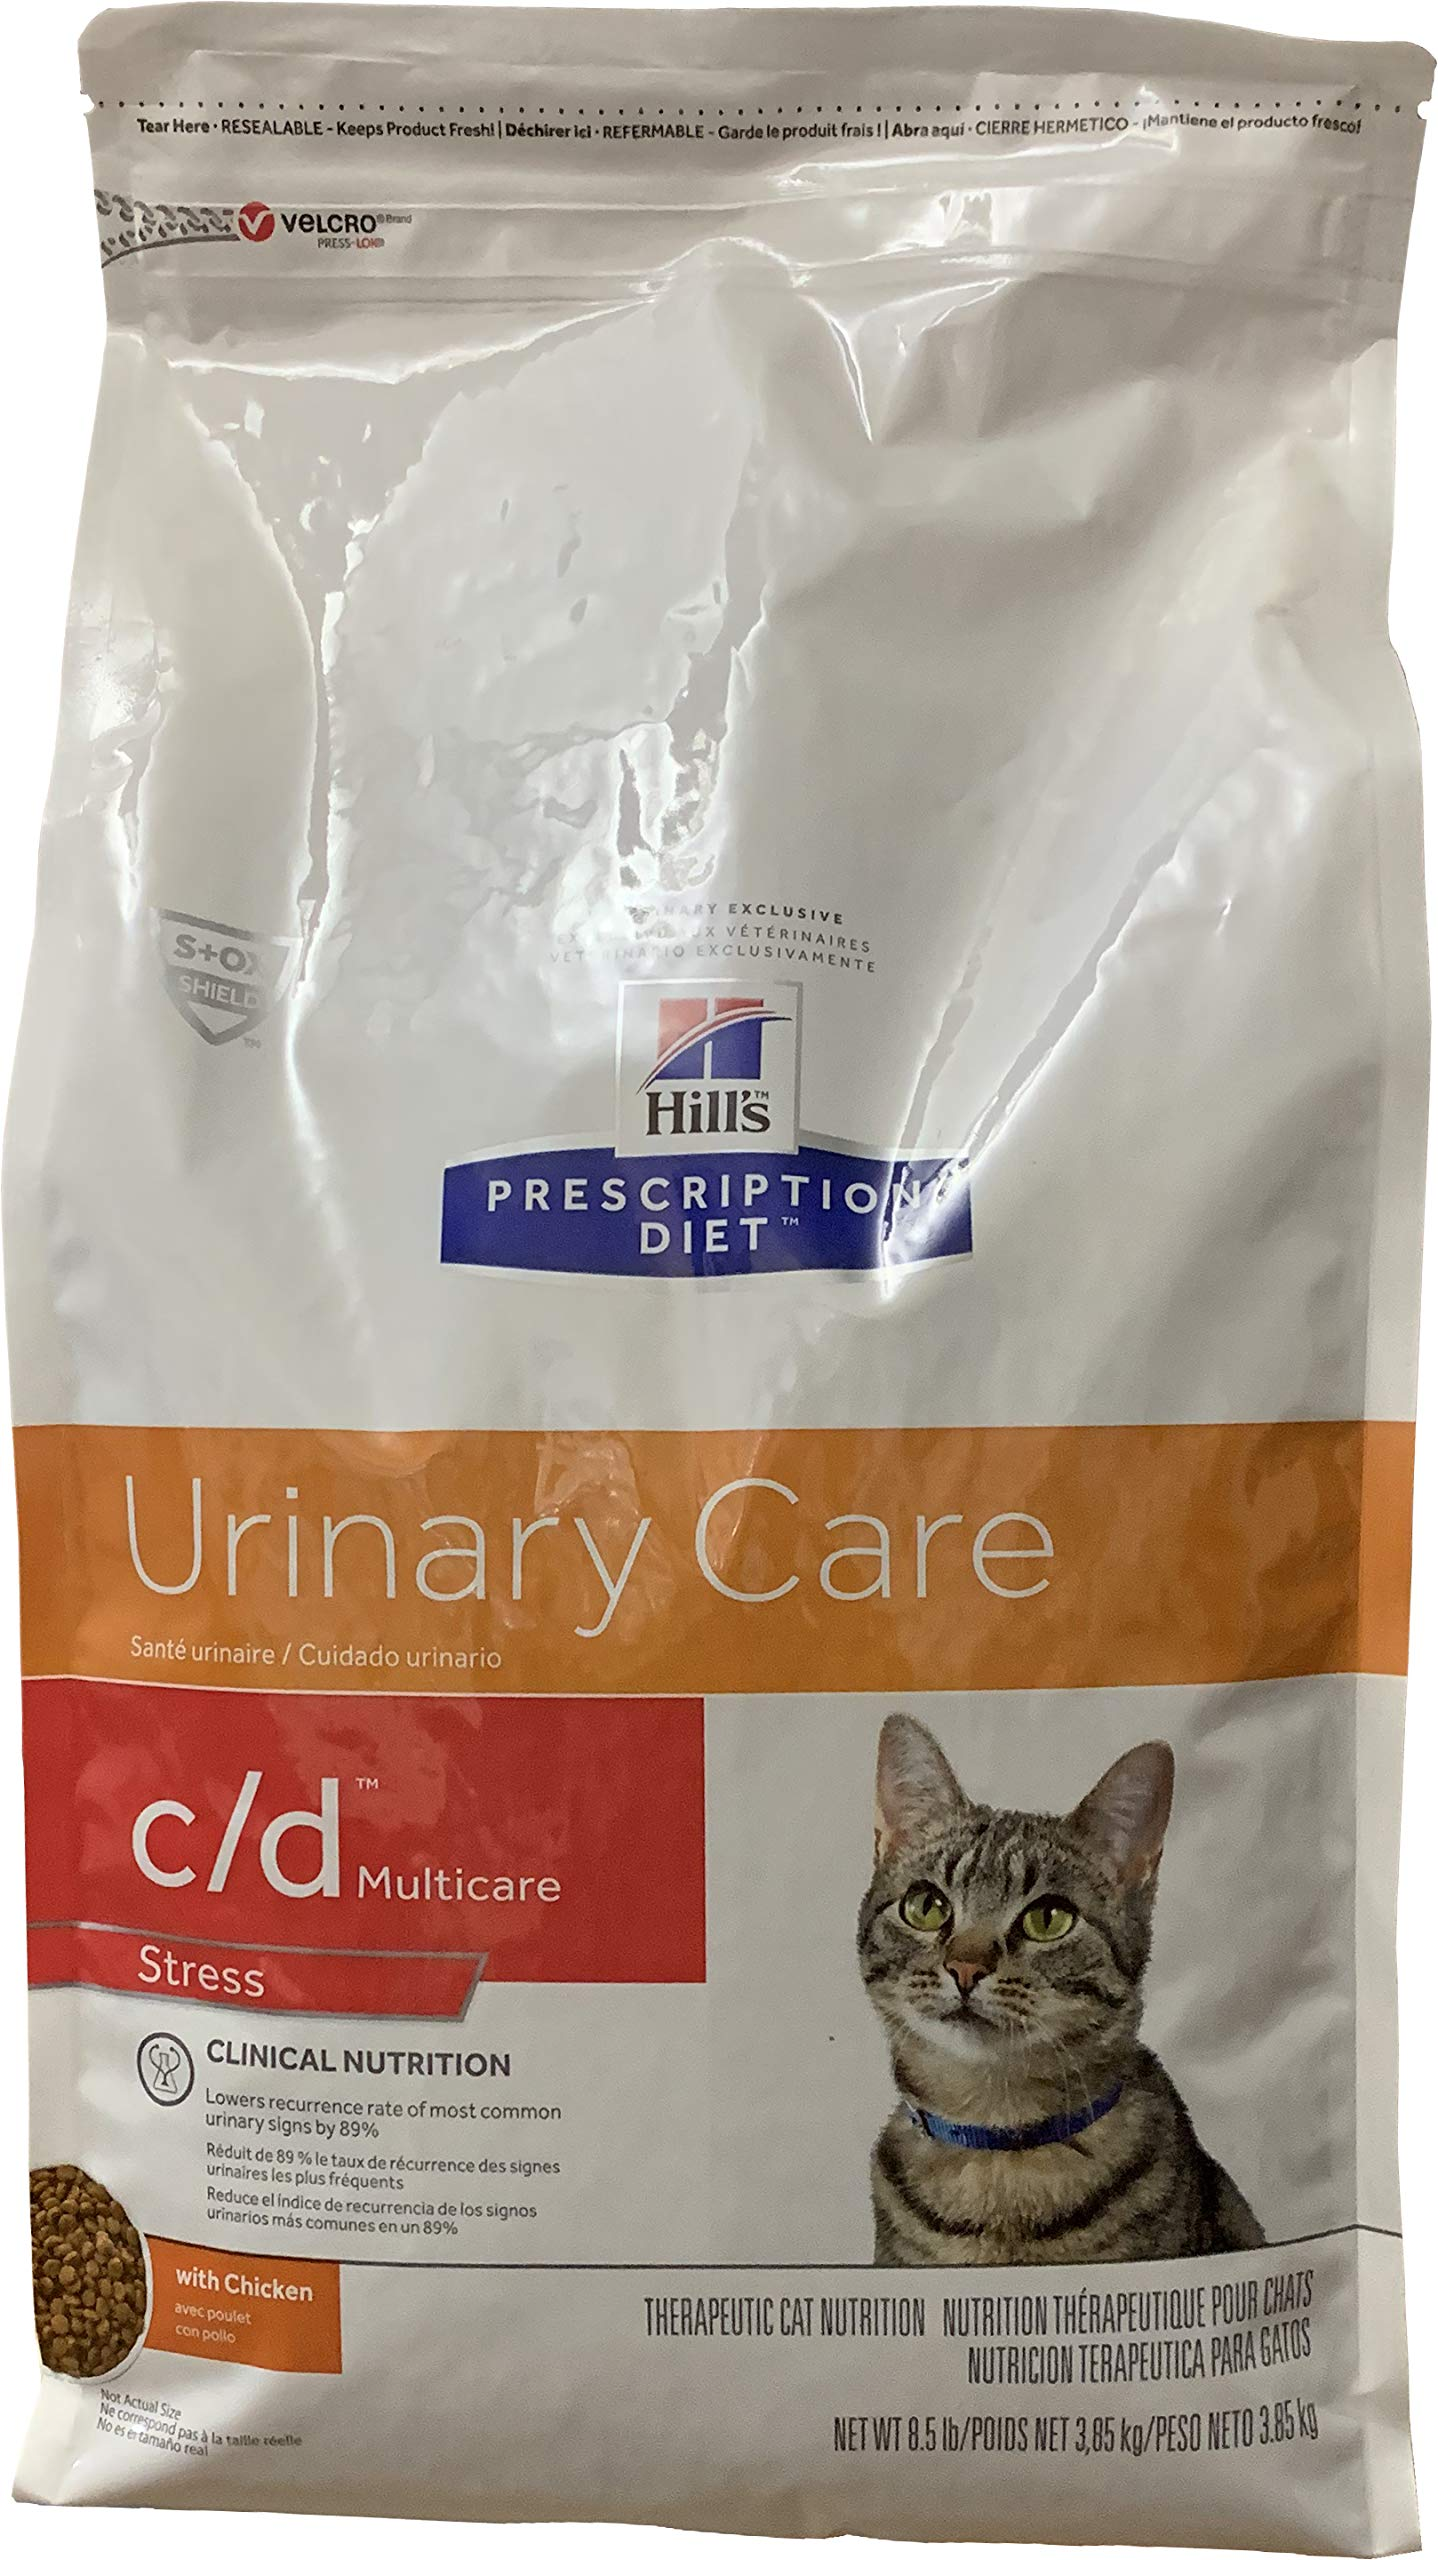 HILL'S PRESCRIPTION DIET c/d Multicare Stress Urinary Care with Chicken Dry cat Food, 8.5 lb Bag by HILL'S PRESCRIPTION DIET